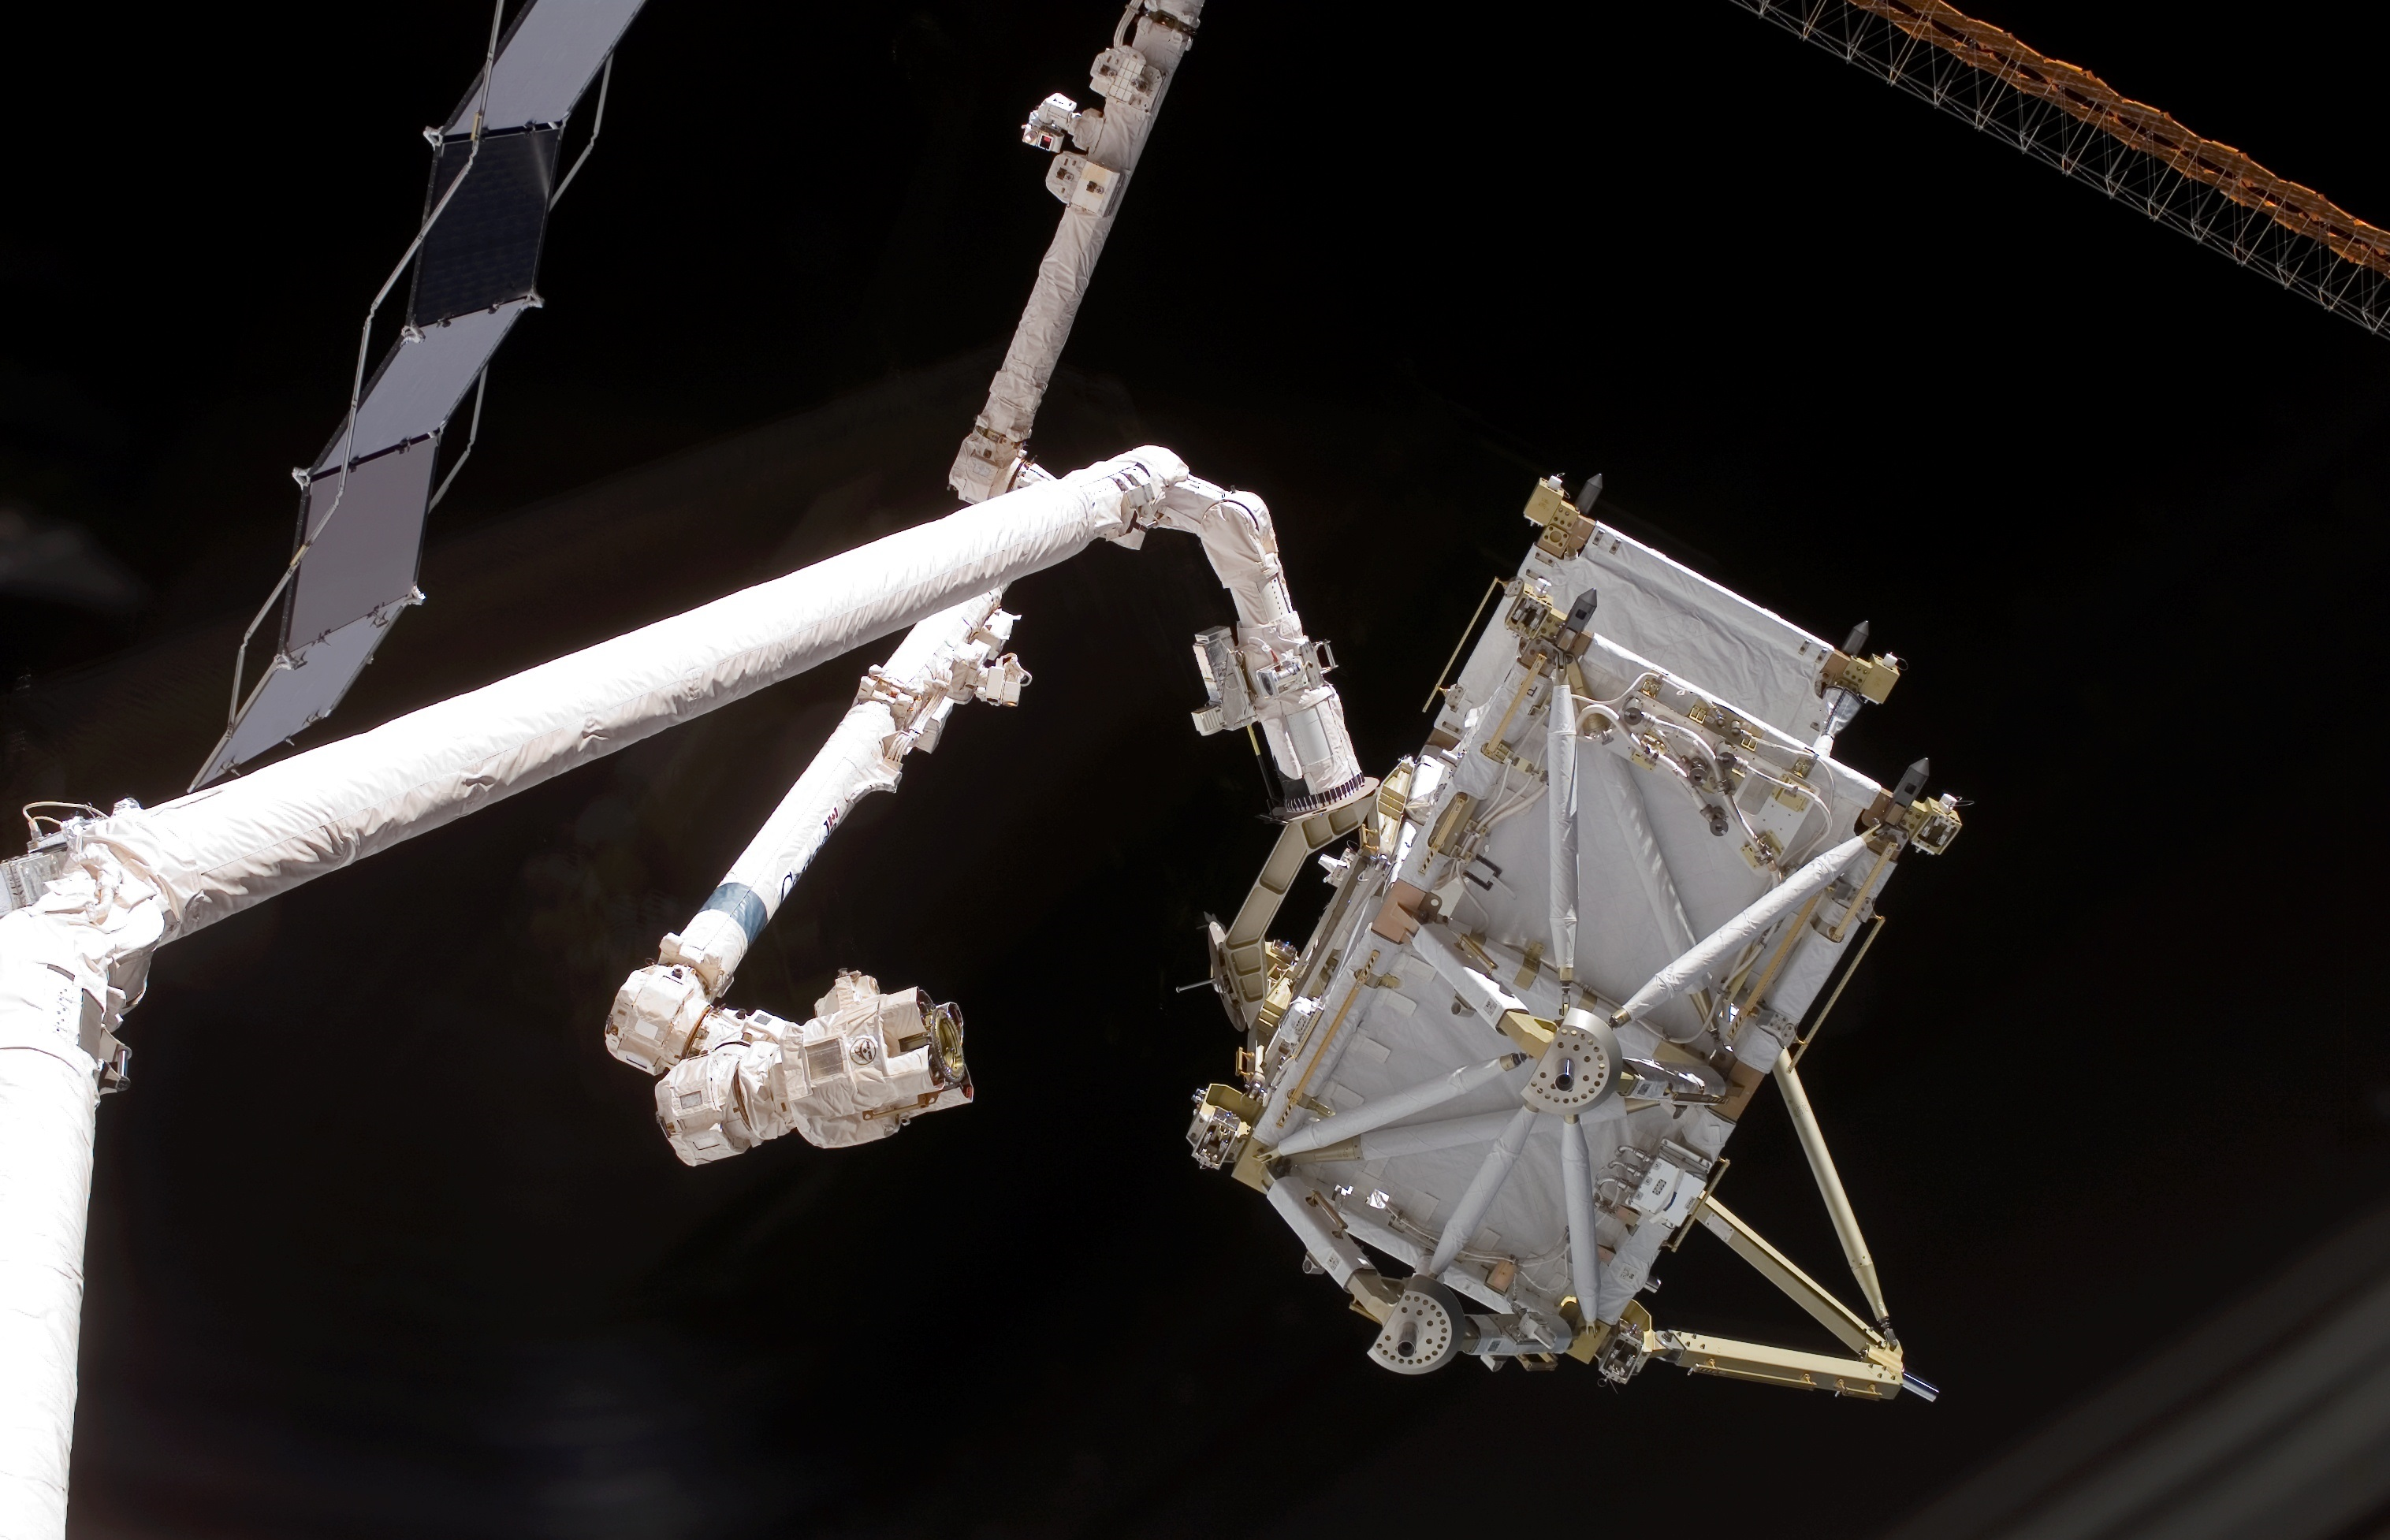 Iss spacewalkers set for critical robotic arm upgrade via second lee replacement - Second hand mobile homes freedom in motion ...